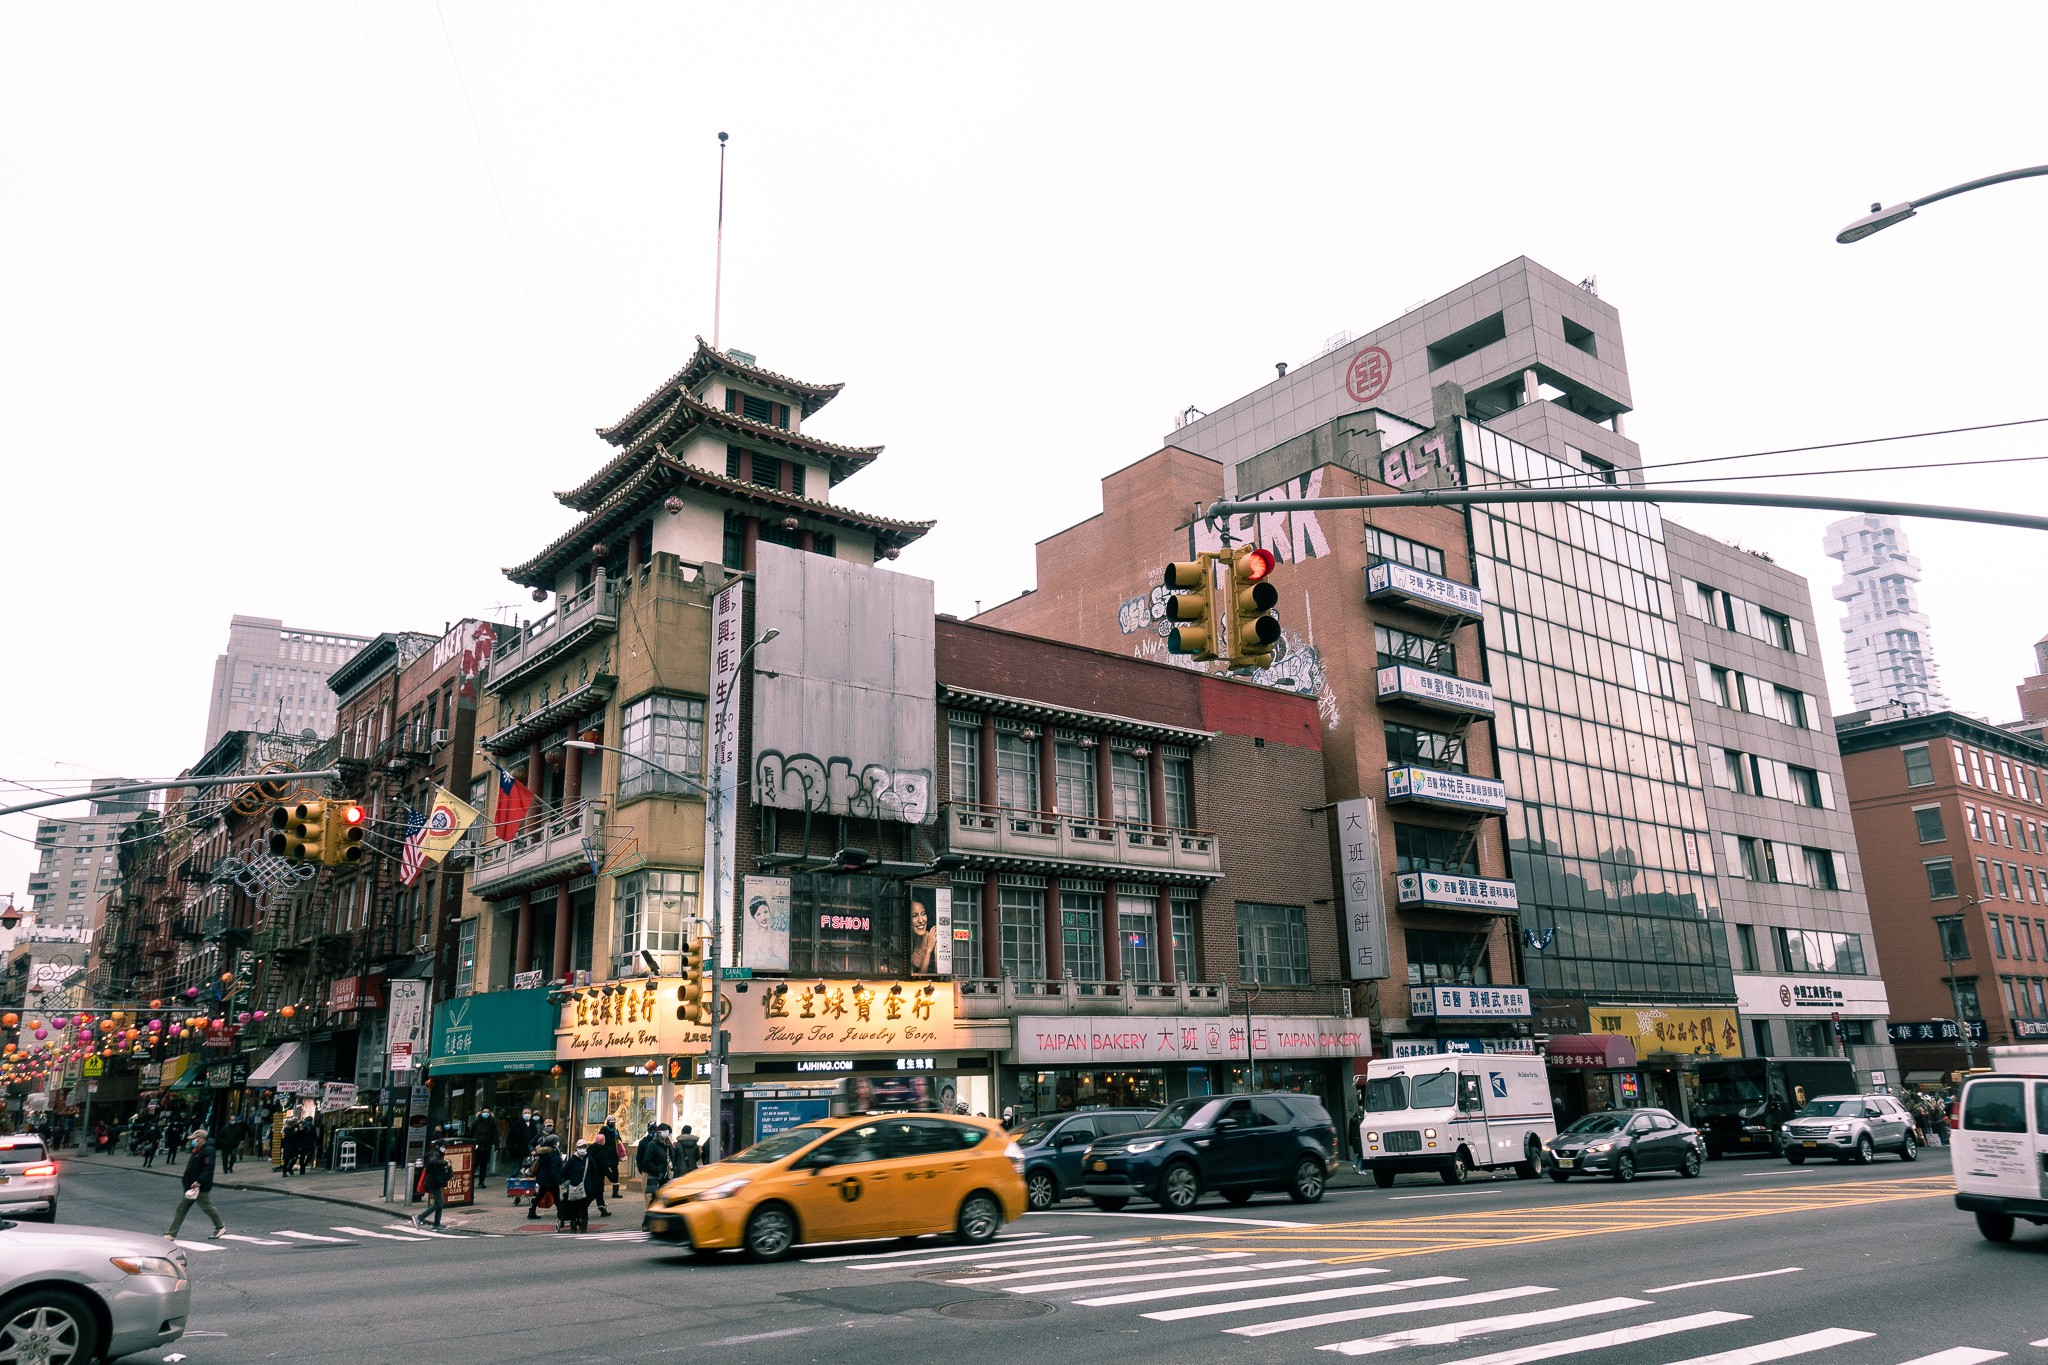 Chinatown, NYC, New York Chinatown, Pagodas and buildings in Manhattan, Chinese storefronts